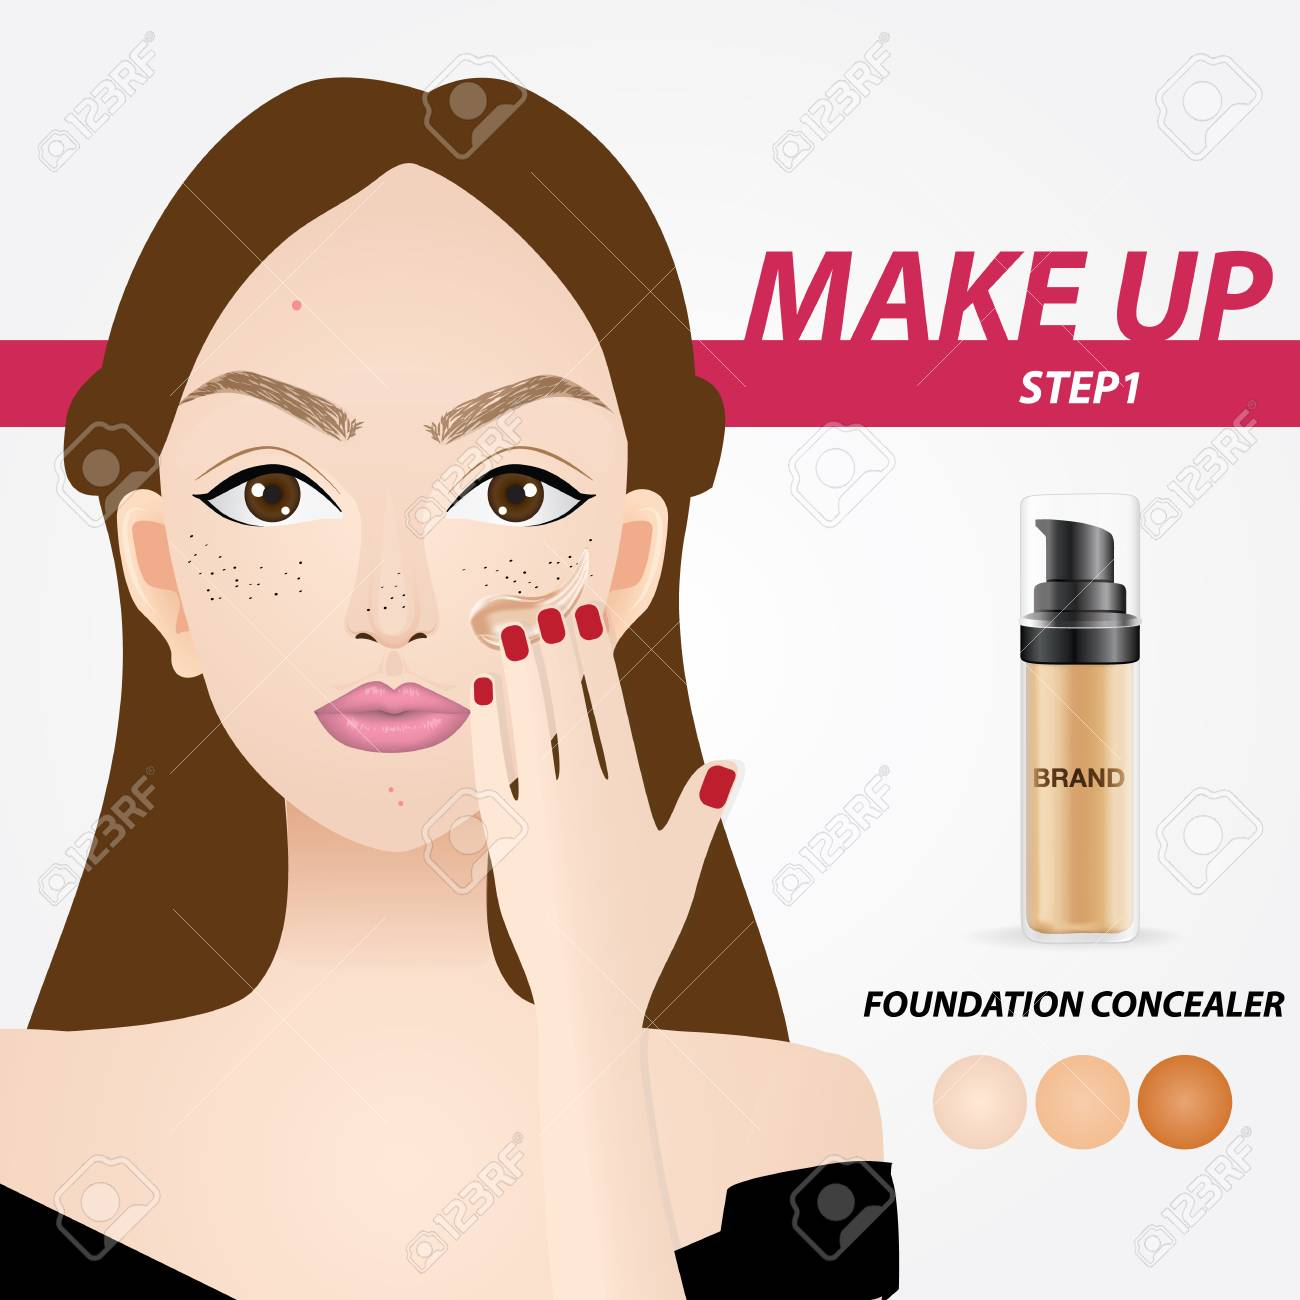 How To Apply Foundation Vector Illustration Royalty Free Cliparts Vectors And Stock Illustration Image 100635033